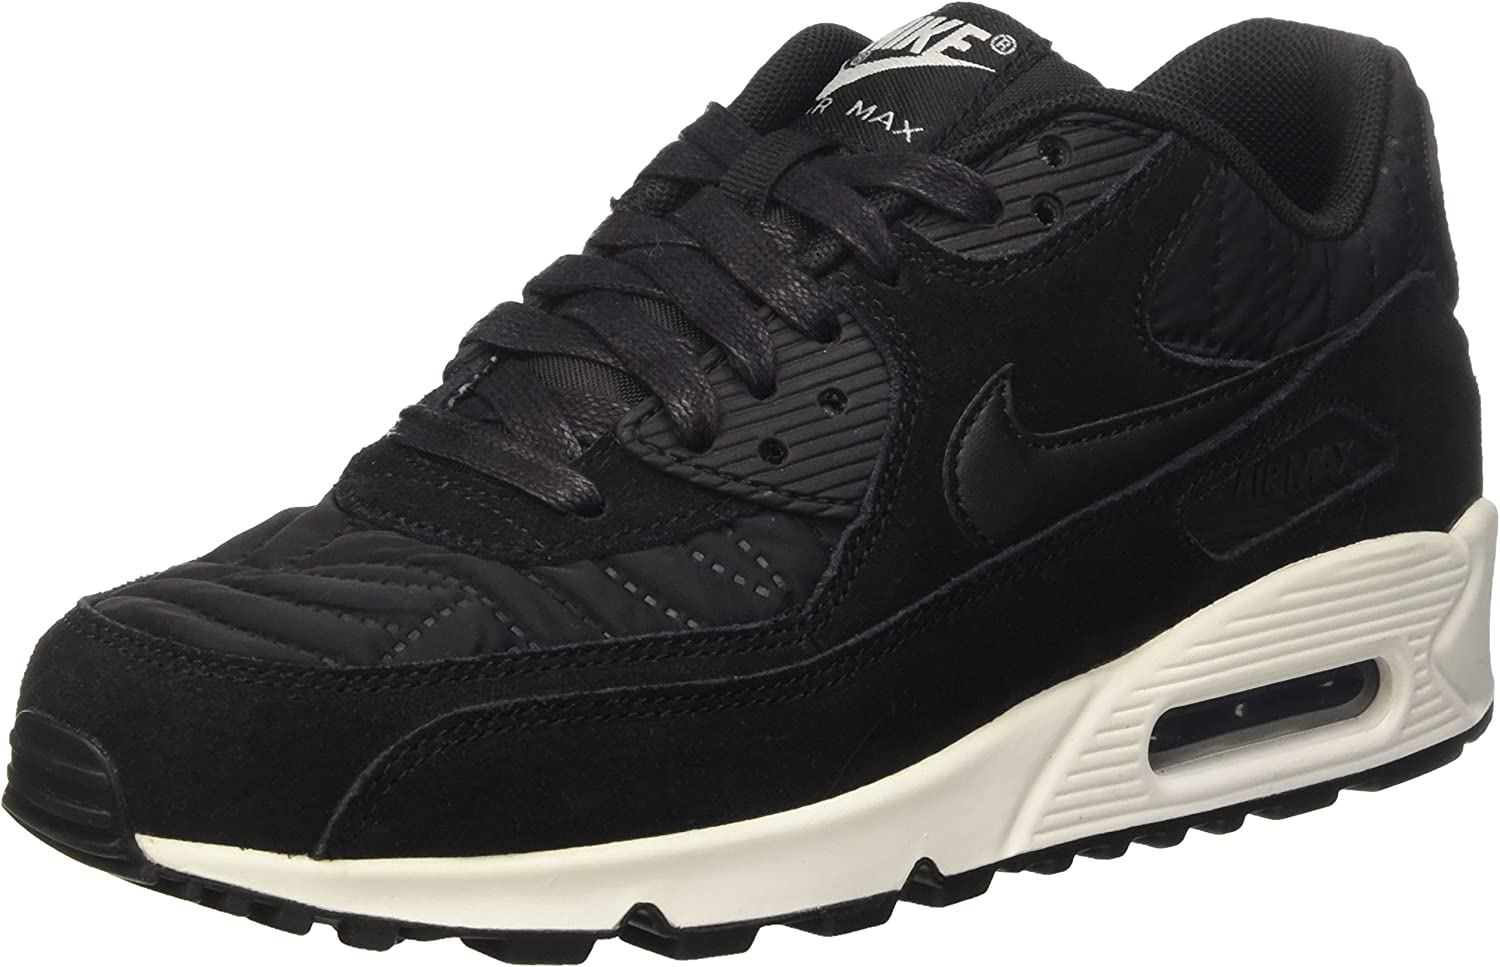 Nike Women's Air Max 90 Prem Running shoes